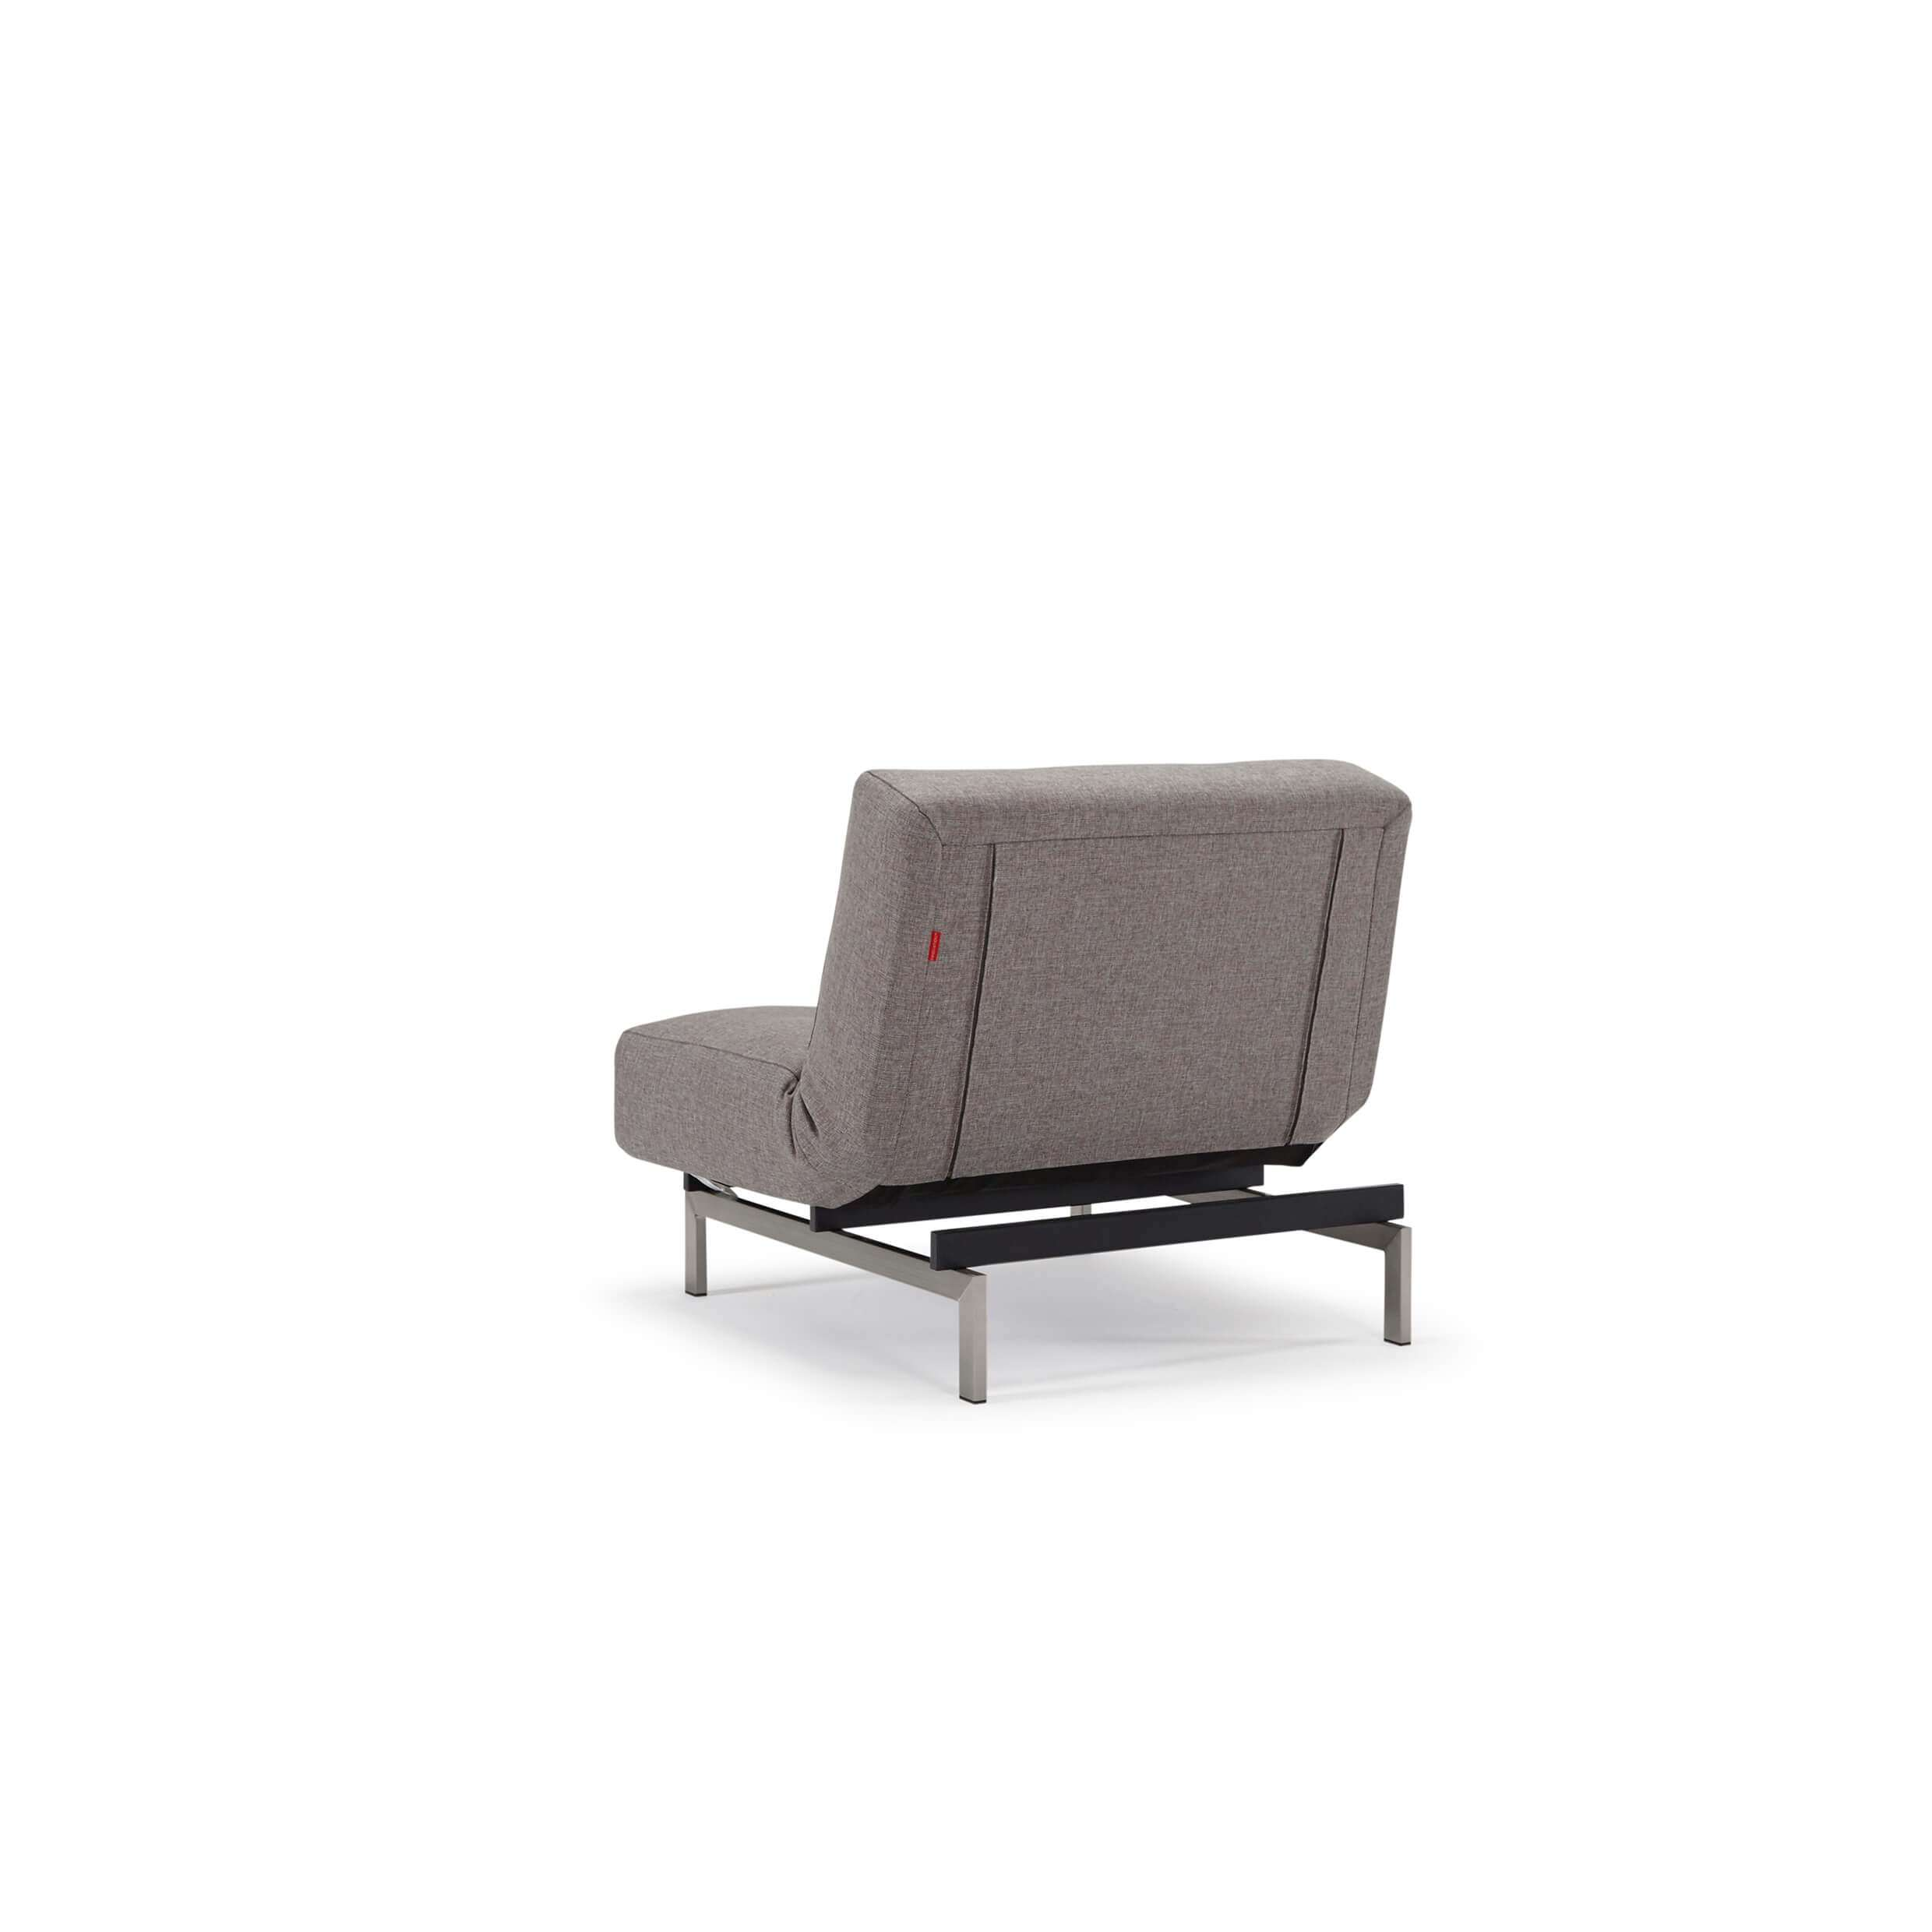 Futon chair bed rear view